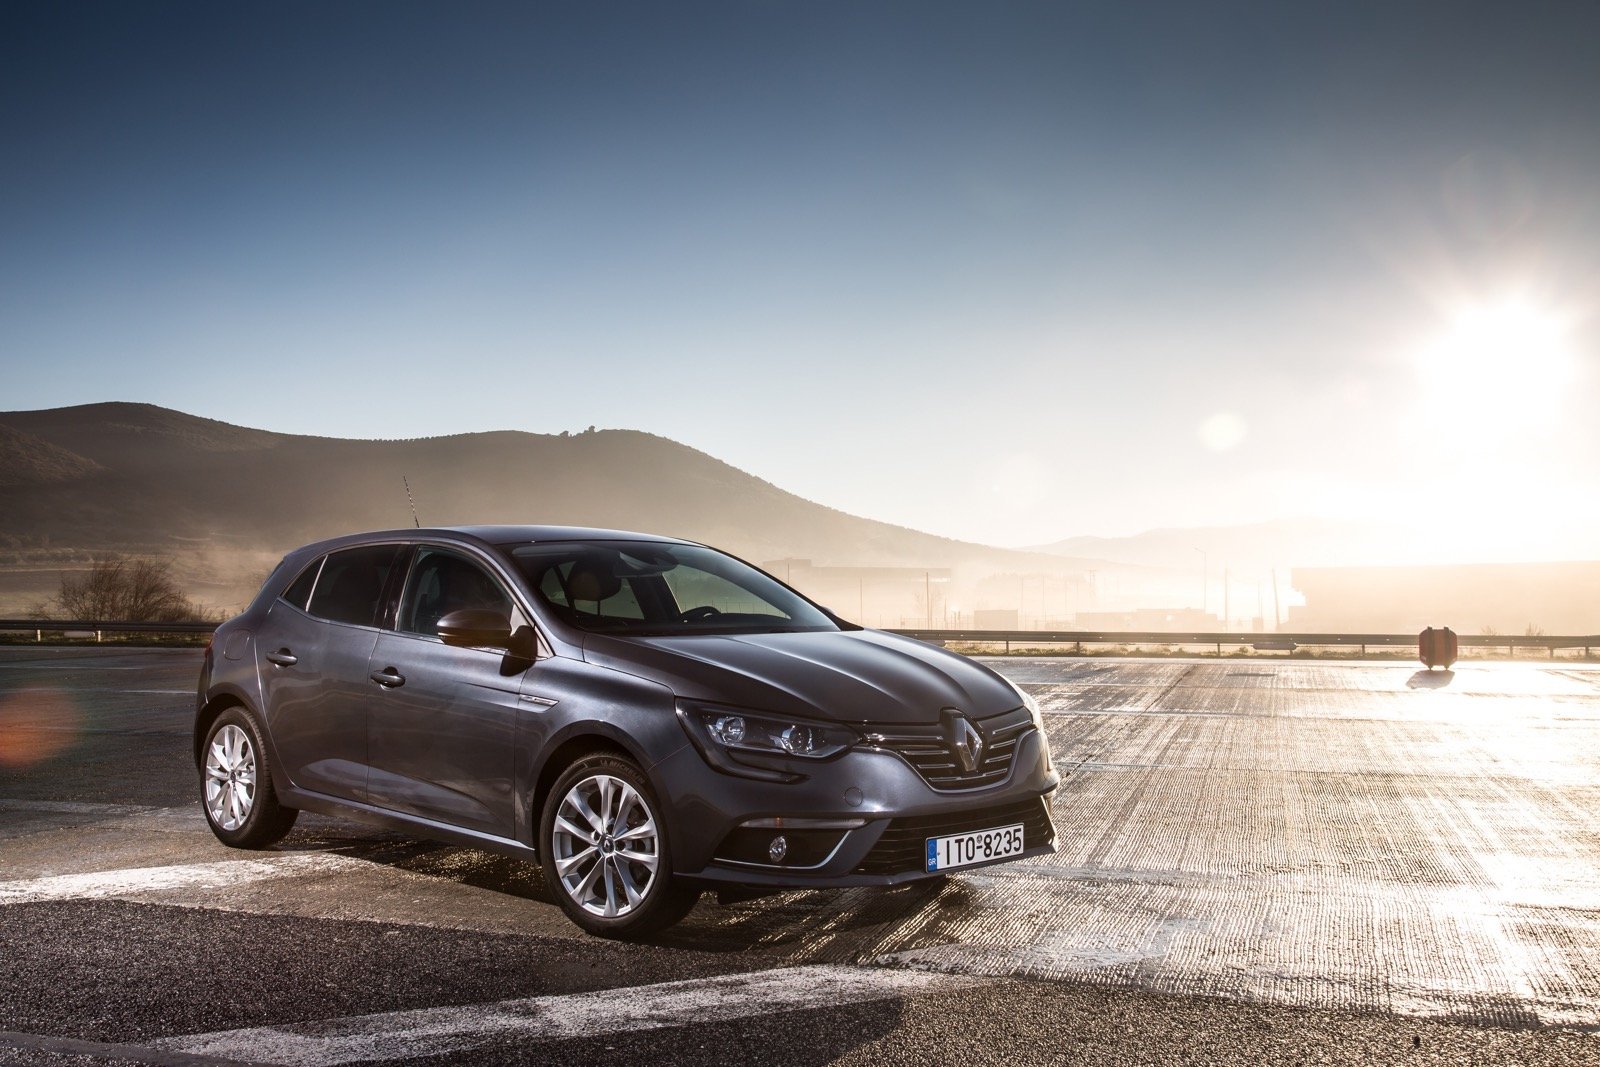 First_Drive_Renault_Megane_06